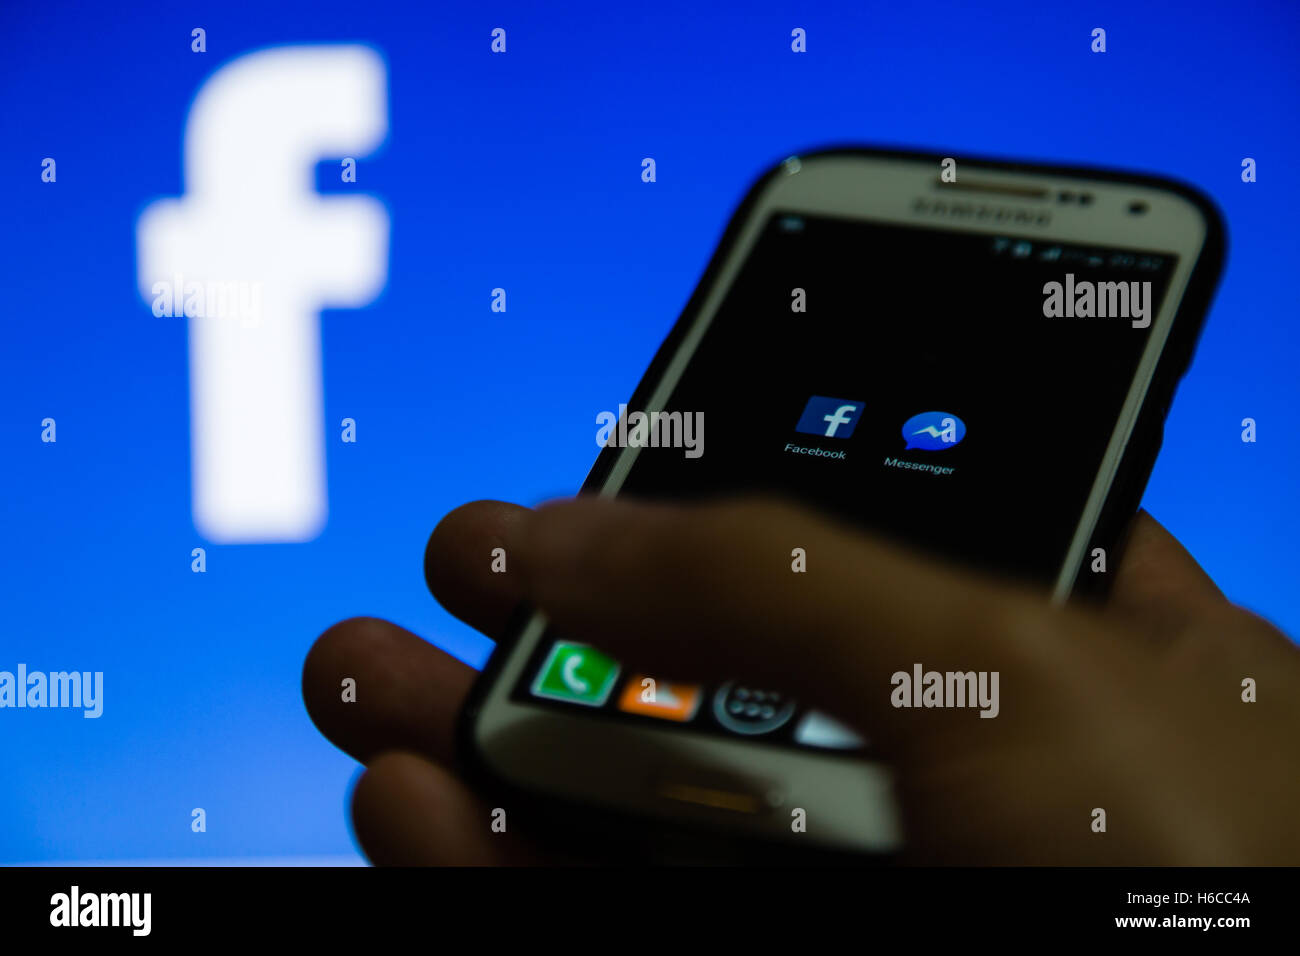 A smartphone display shows Facebook and Messenger application - Stock Image